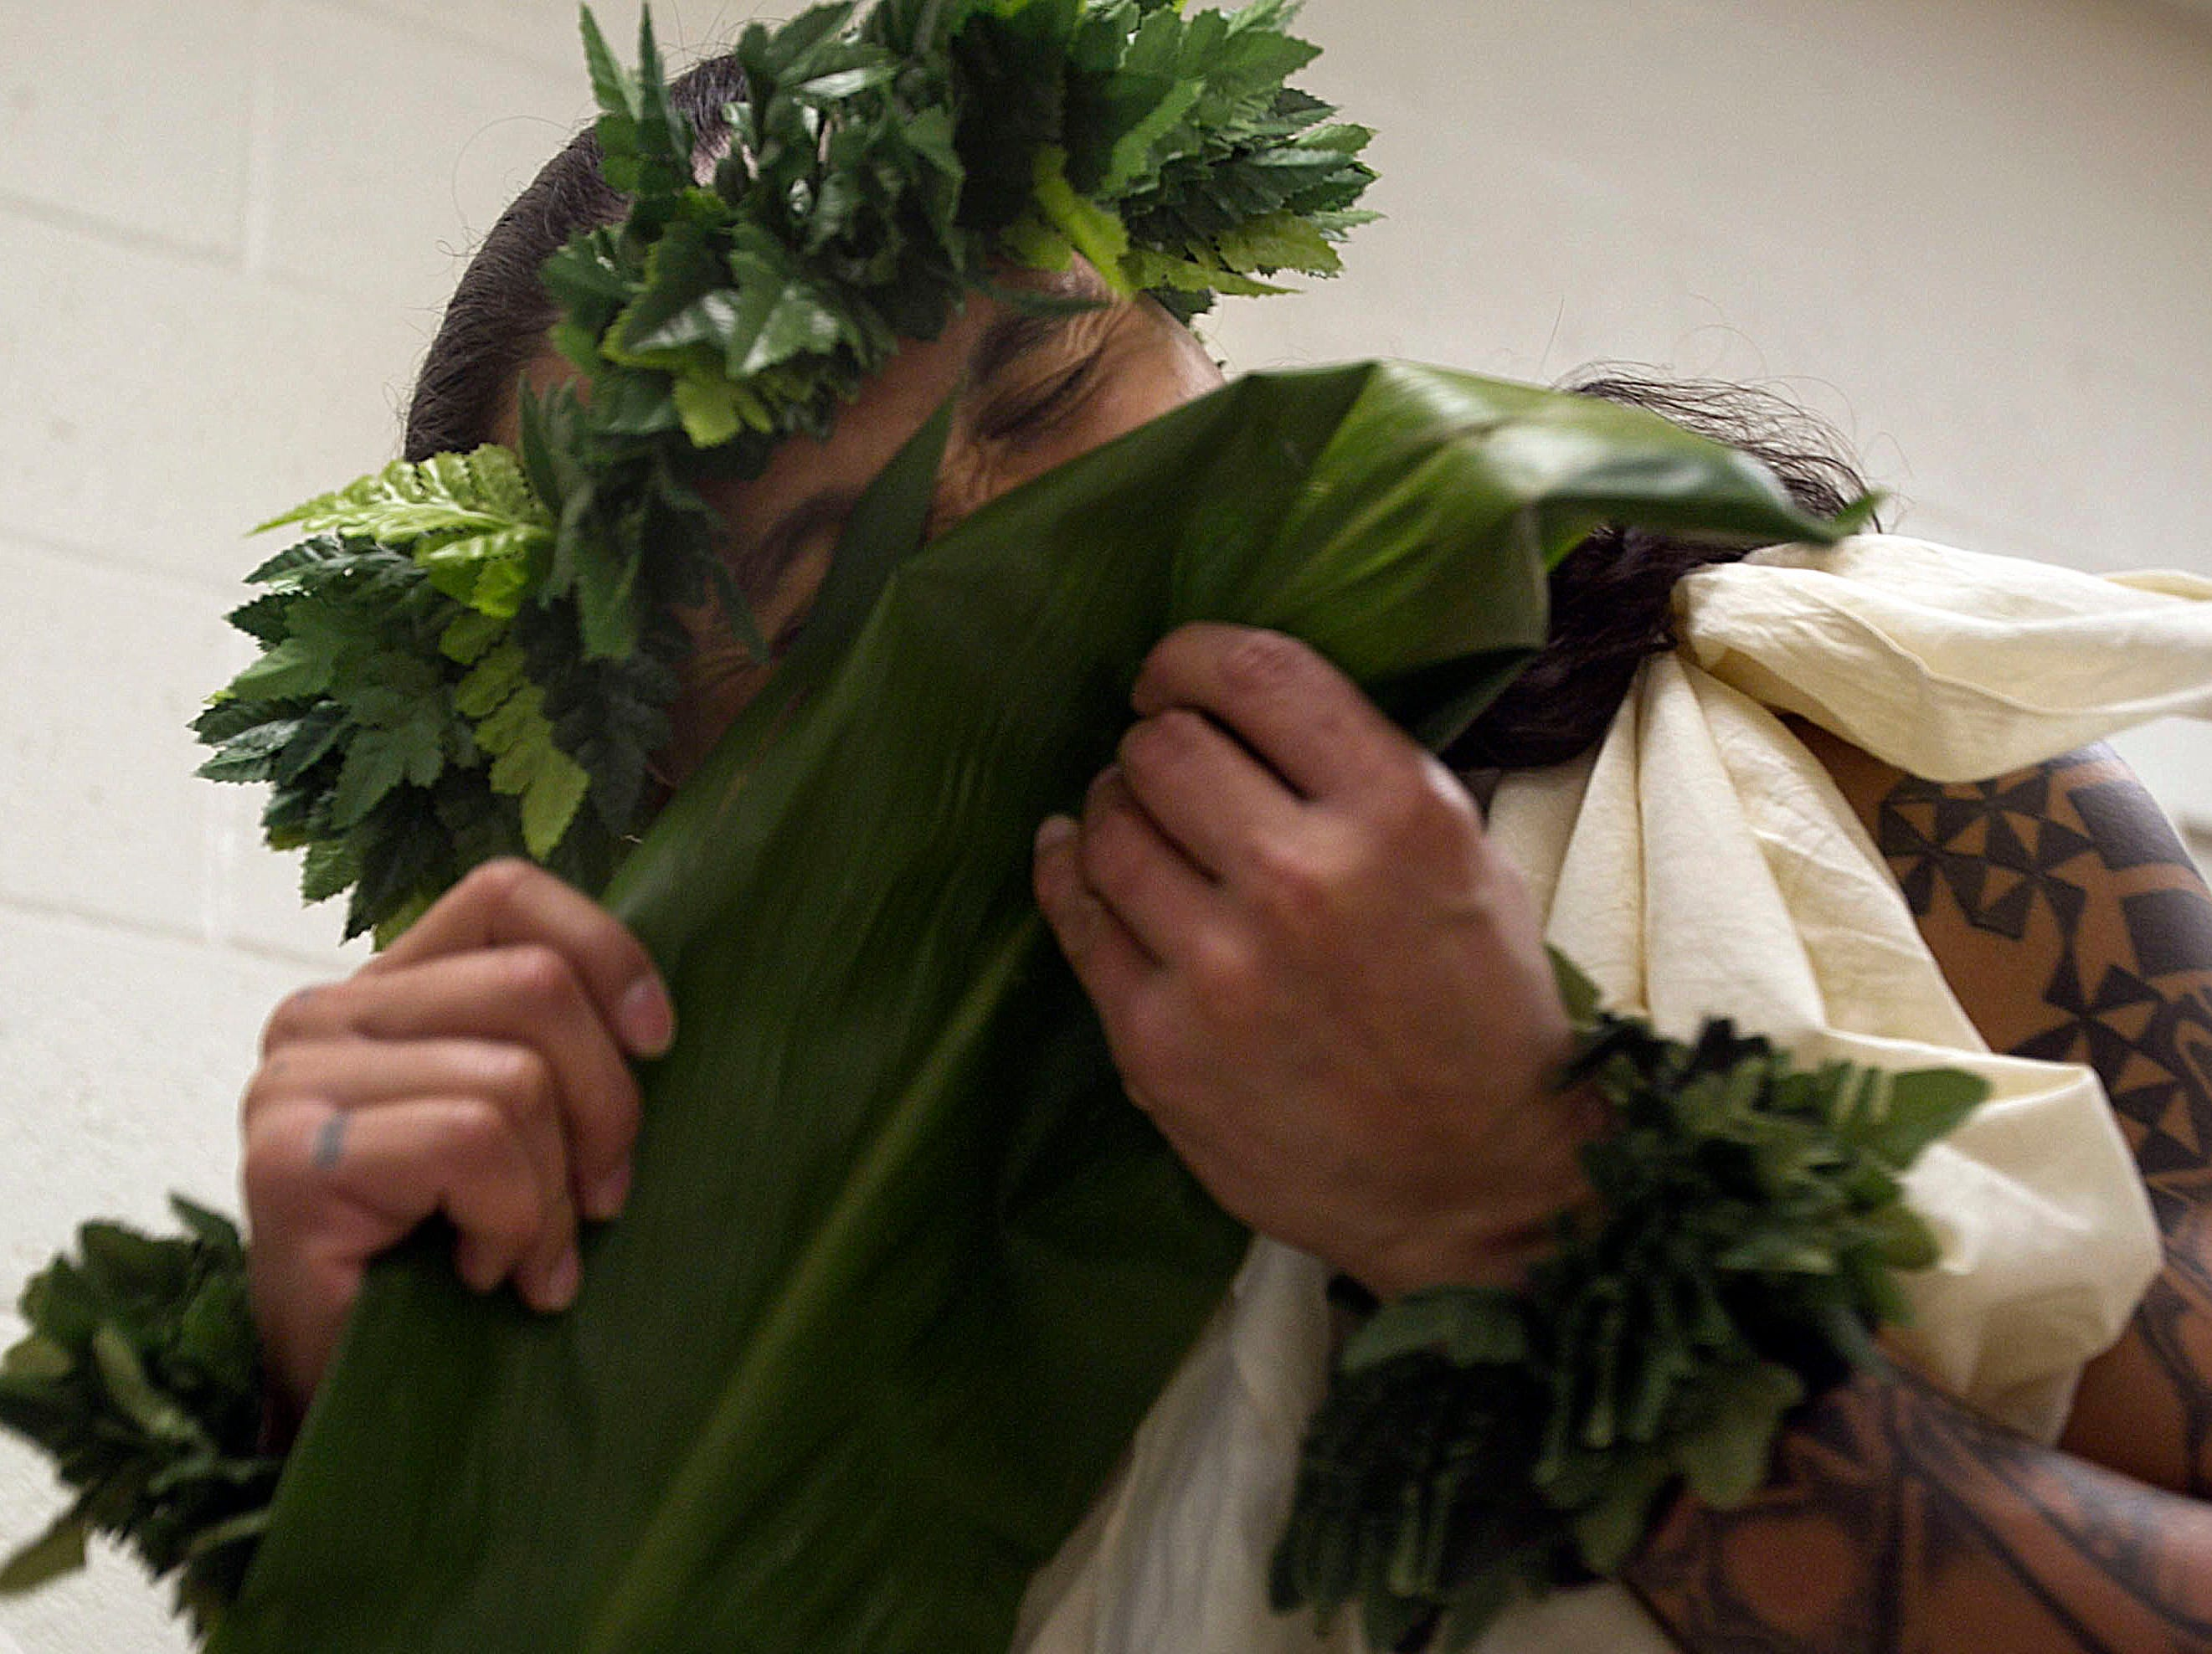 Eugene Ruiz, an inmate from Hawaii at Saguaro Correctional Center in Eloy, prepares for rituals and prayers for the beginning of the Makahiki season of harvest on Oct. 11, 2011.